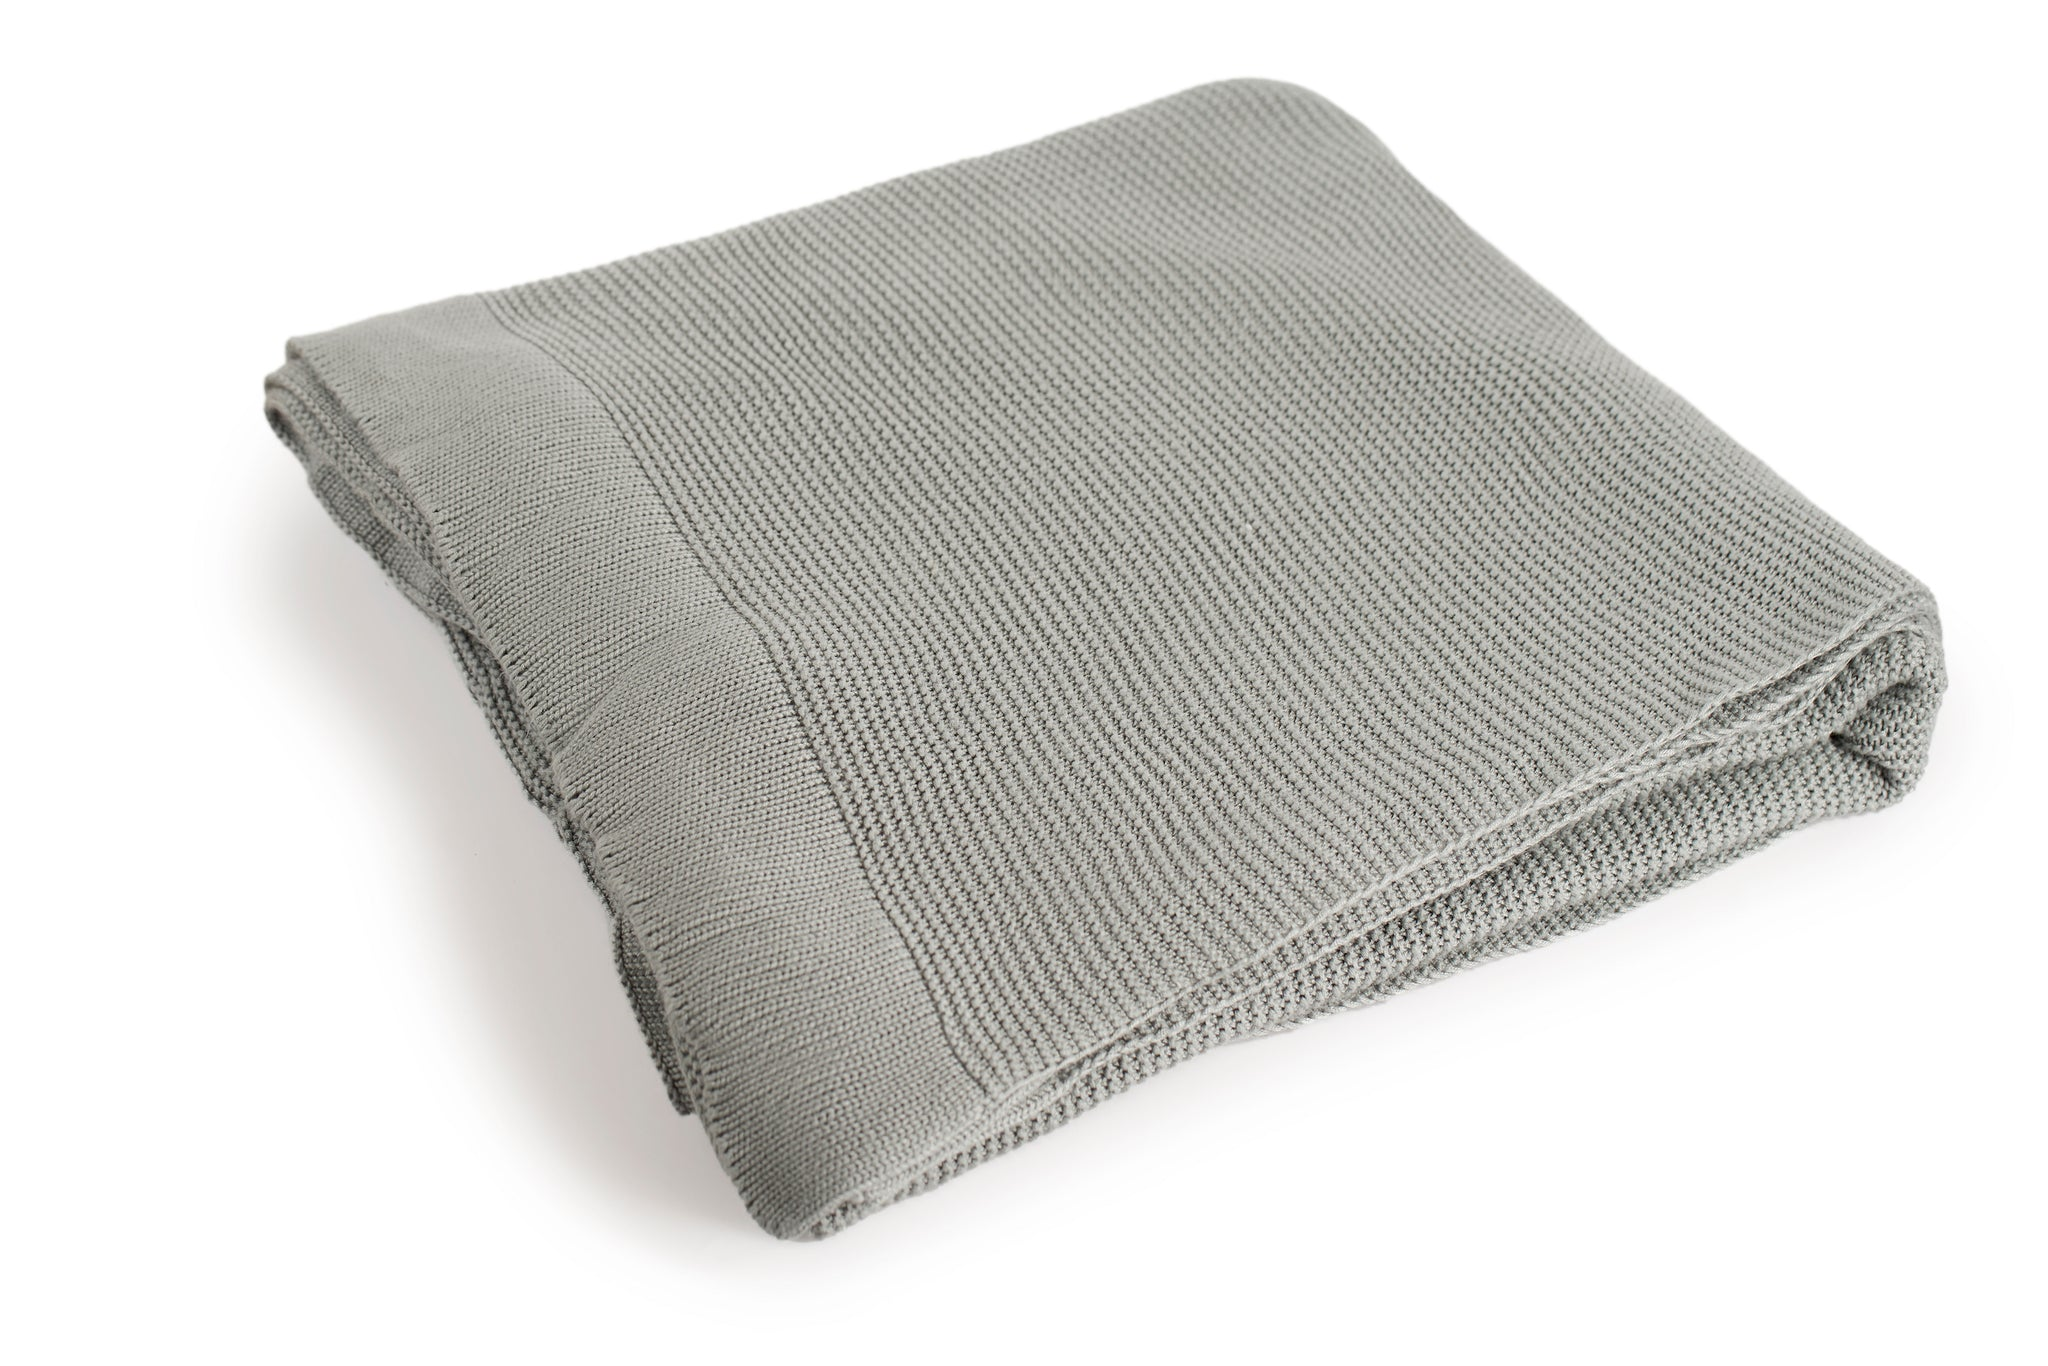 Bamboo Blanket - Green